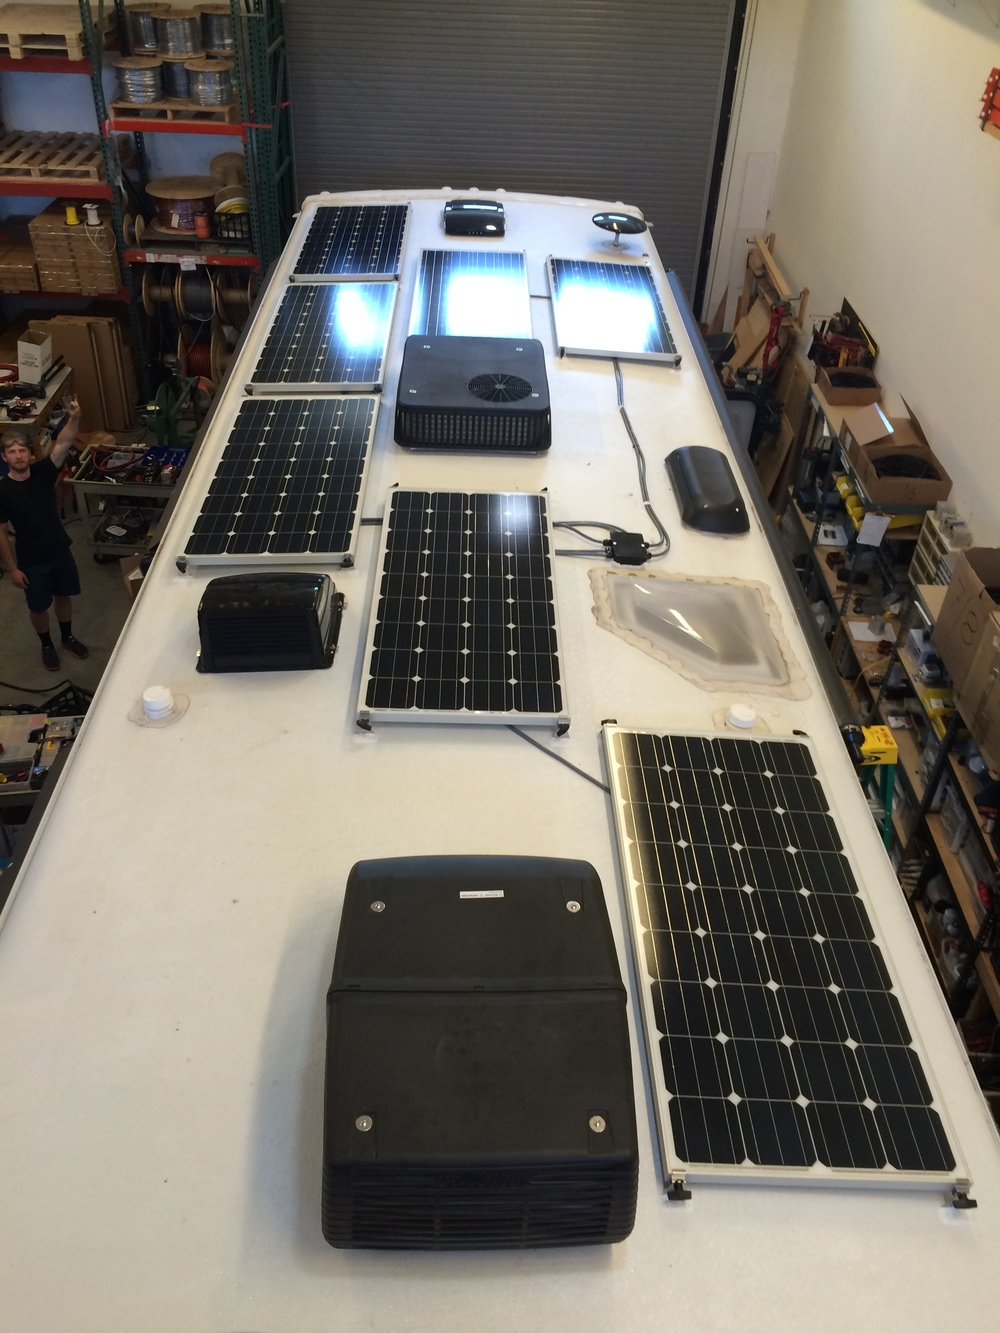 Equipment Added:  7x  SF160 160W Solar Panels  1x  Roof C-Box  1x  Sun Runner Victron MPPT 50A sub 100/50  1x  Victron MultiPlus 12/3000/120-50 120V Inverter  1x  Victron Color Control GX Monitor  1x  Victron Digital M. Contr.200/200A GX  1x Victron Signature Lithium 400Ah Battery Bank